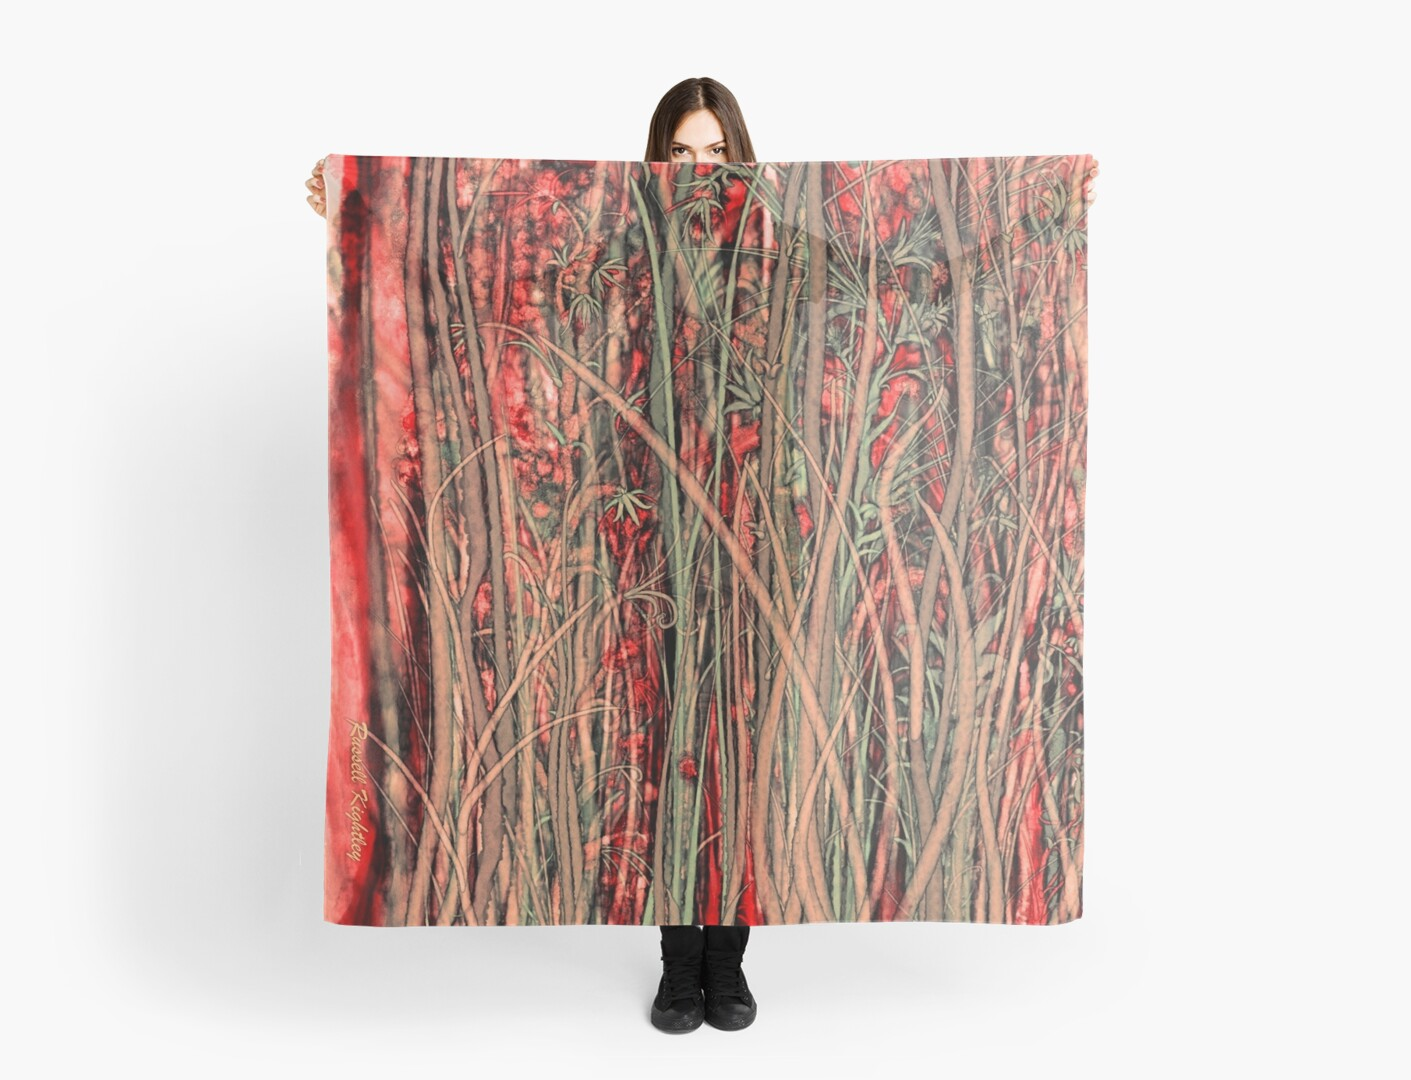 Qualia's Grass (Antique Red) by Russell Kightley